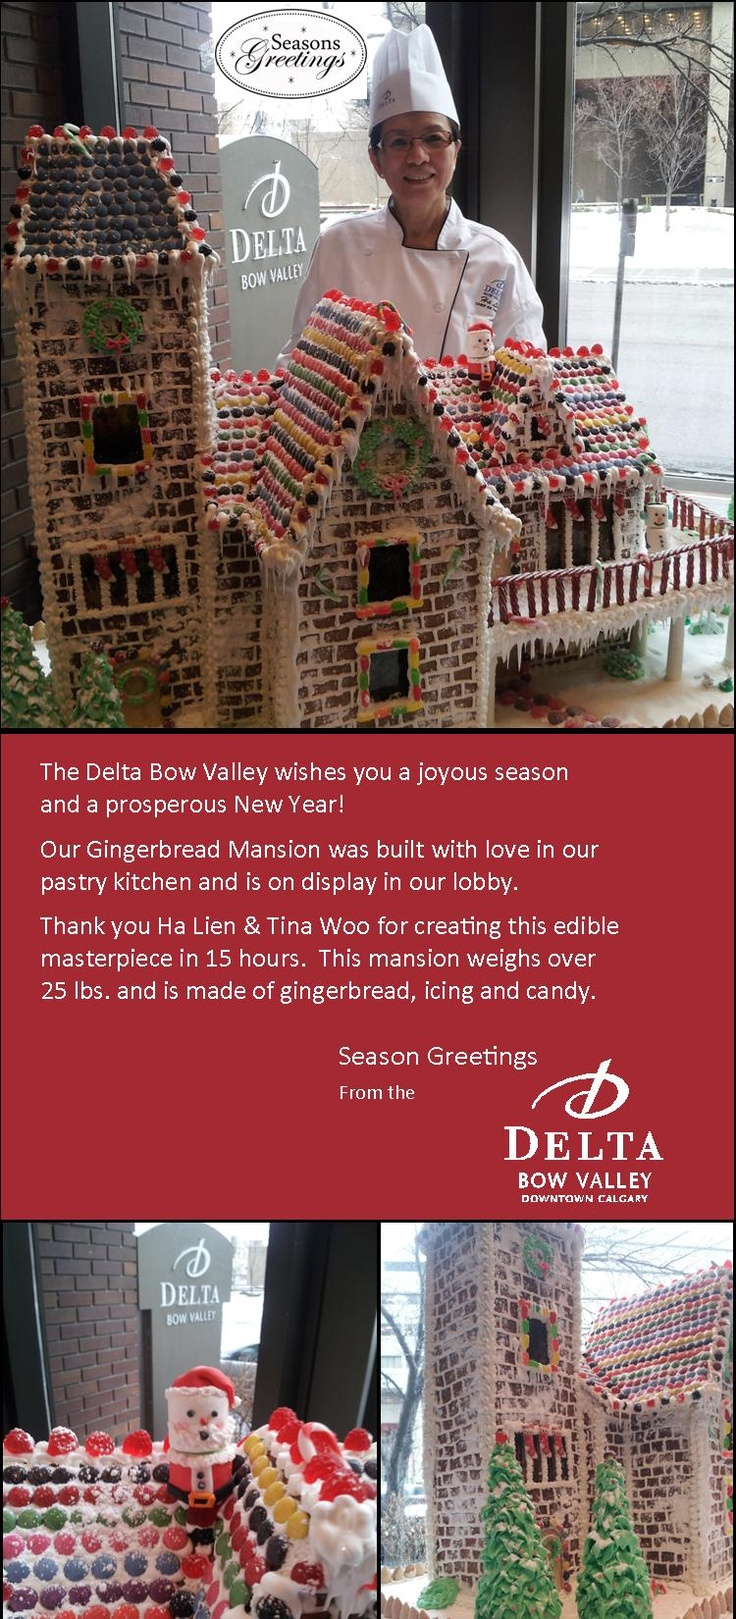 Amazing! Gingerbread Mansion built by our in-house pastry team #DeltaBowValley